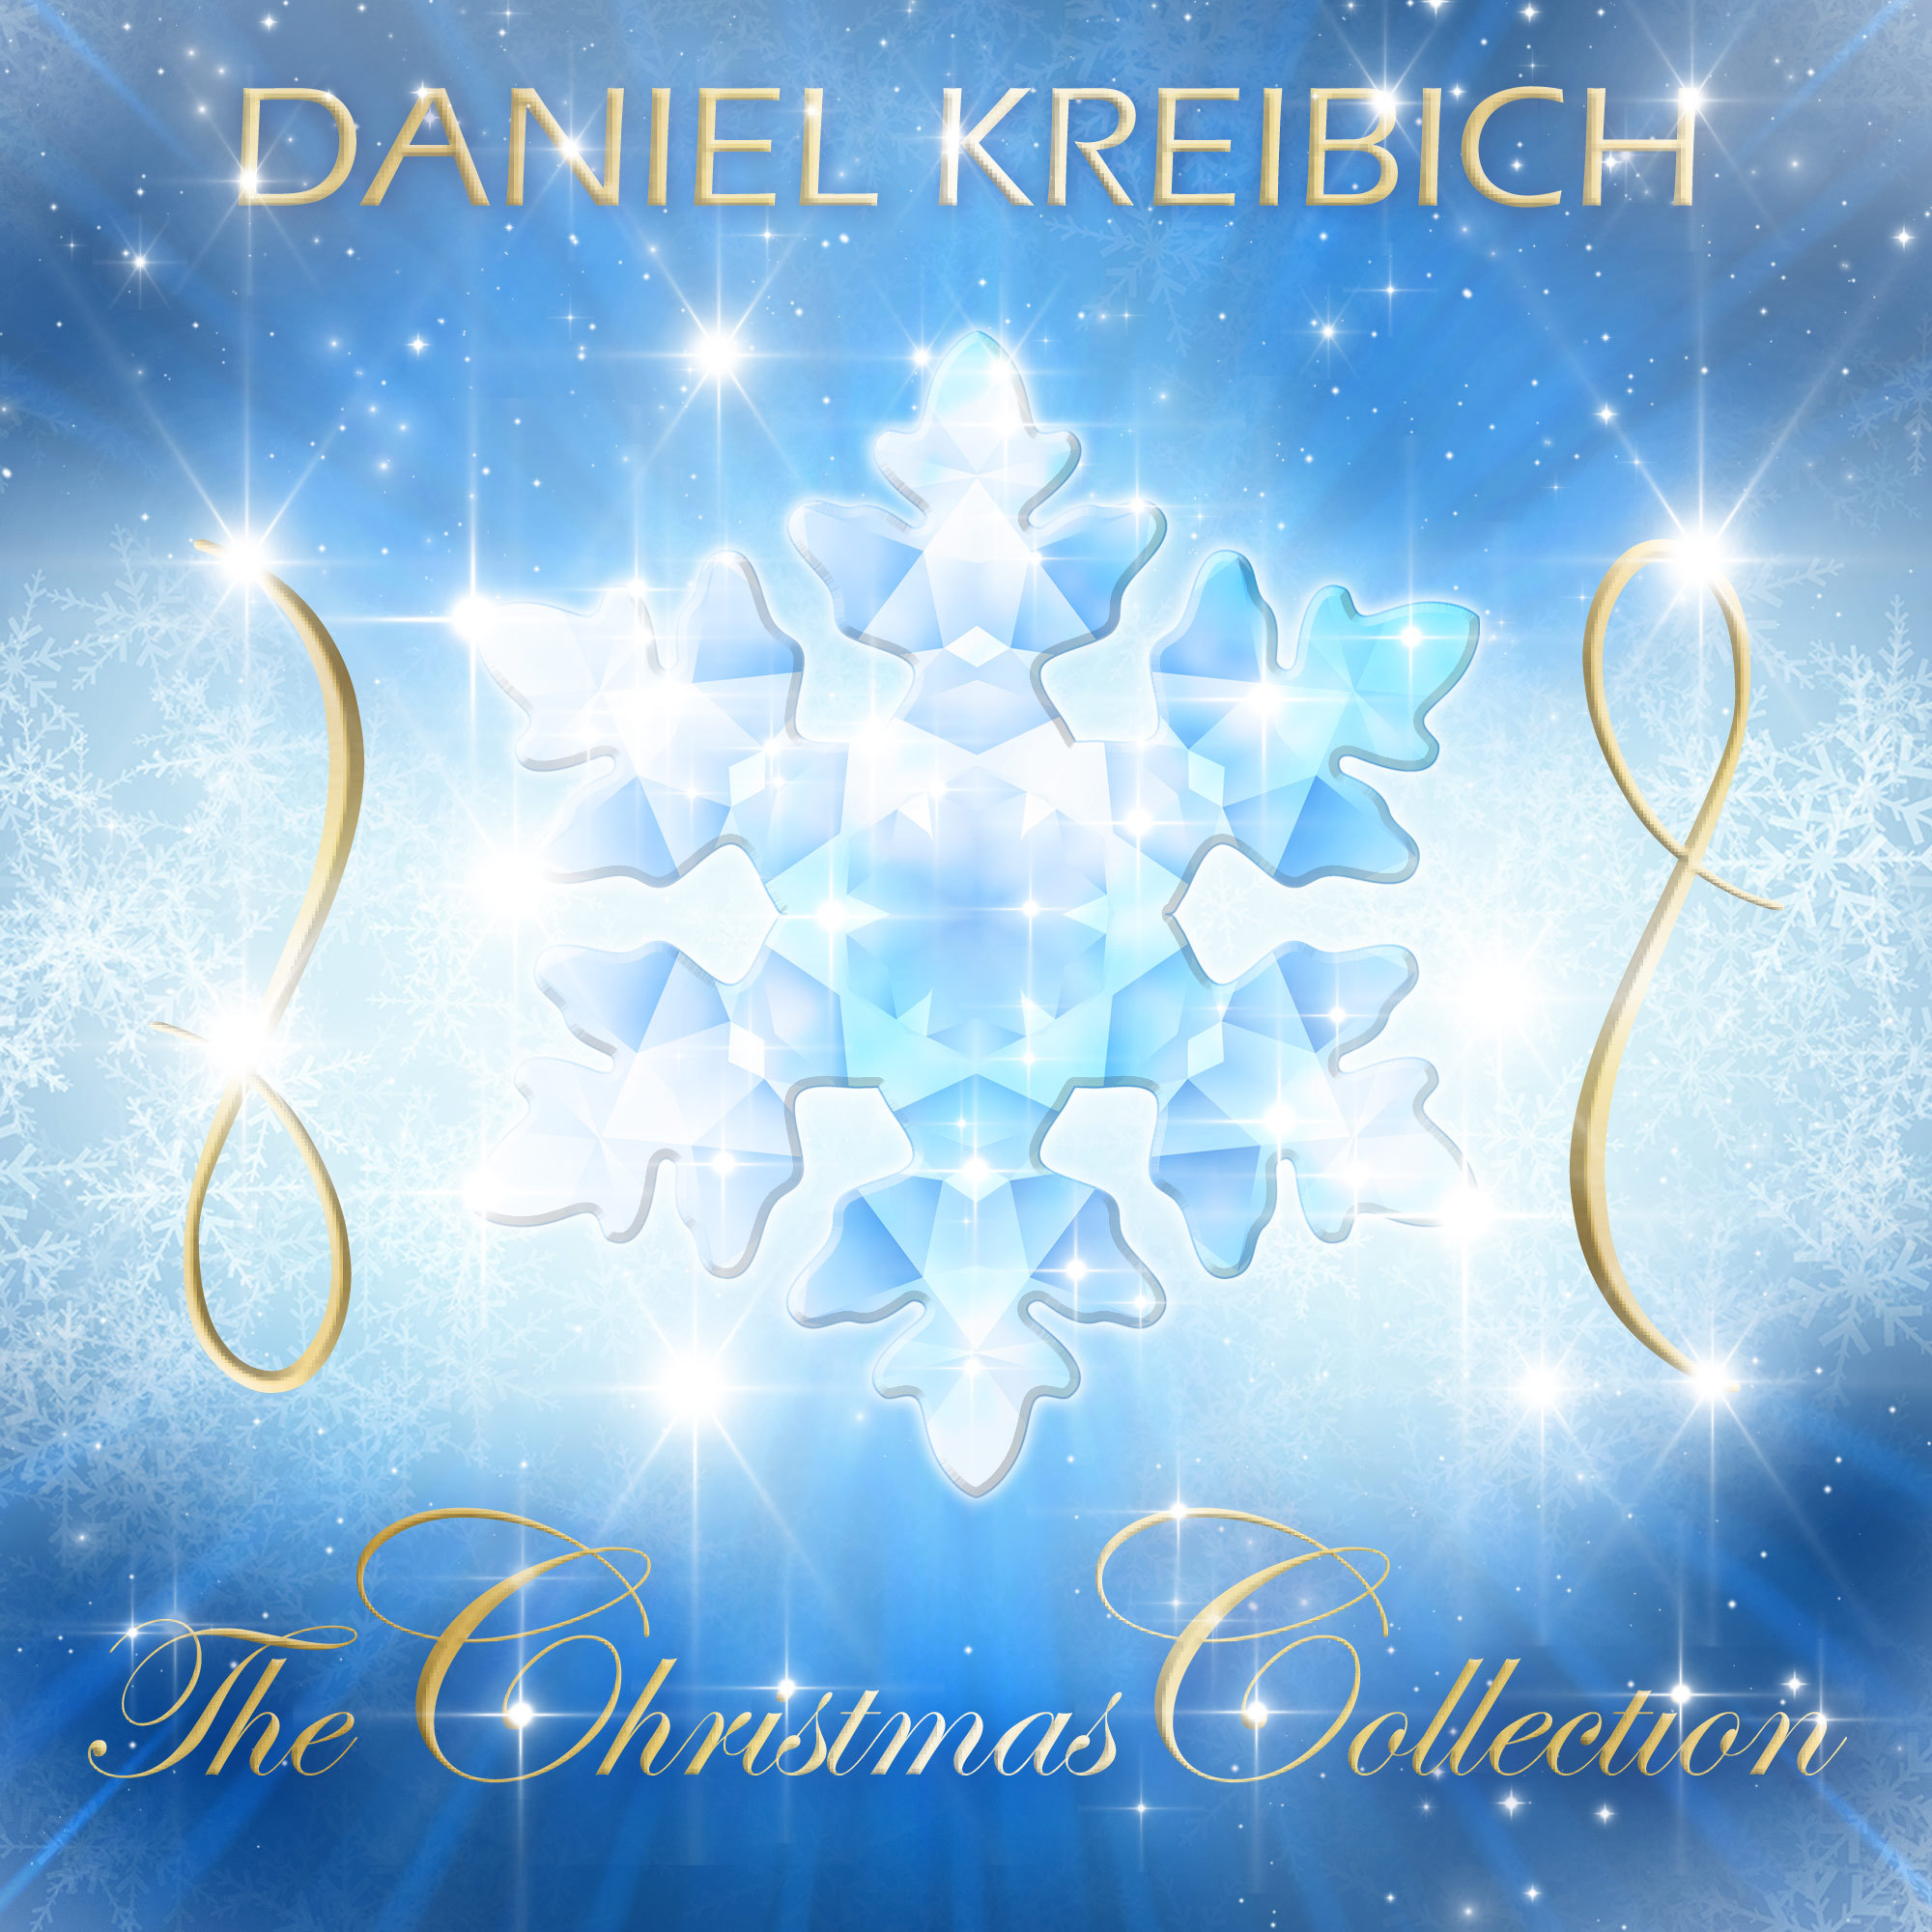 DK_The_Christmas-Collection-logo